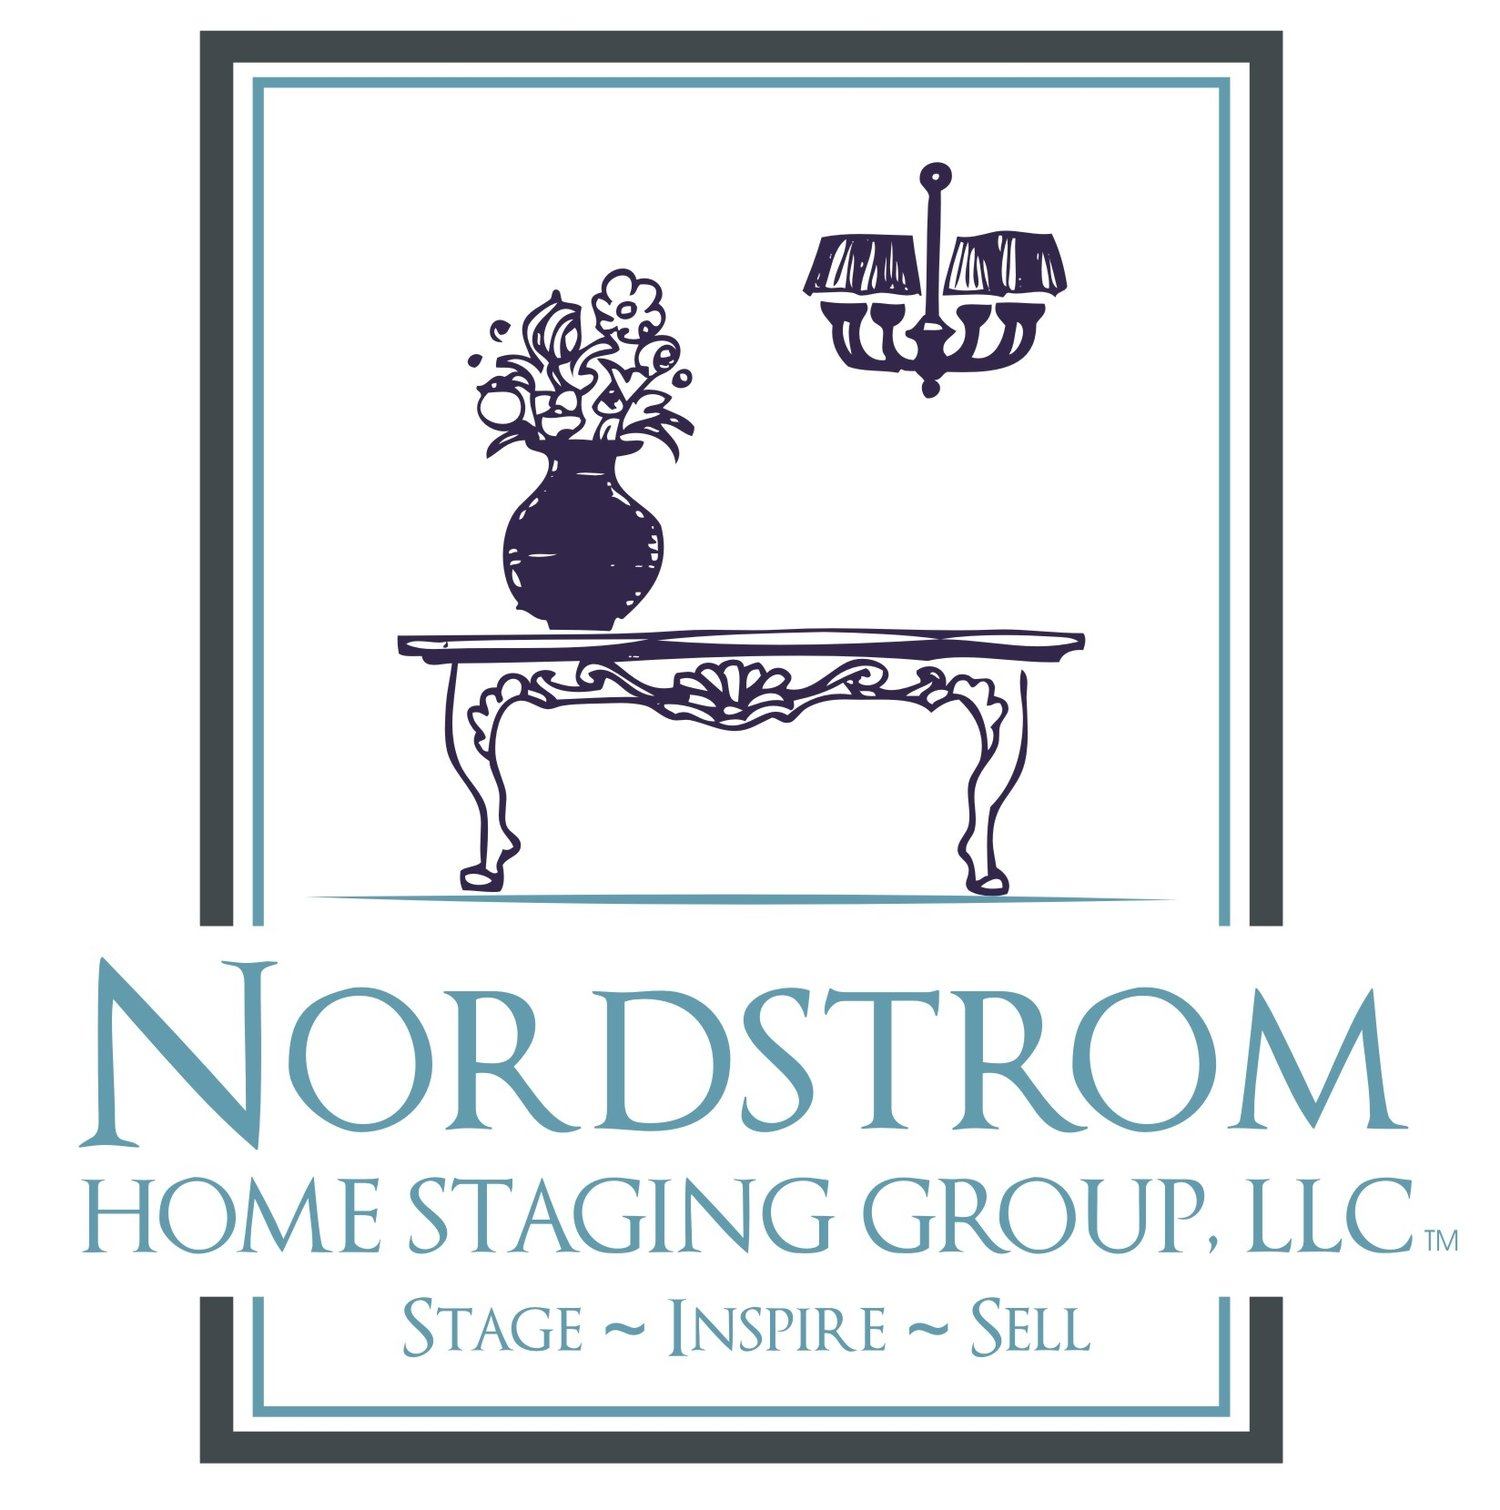 Nordstrom Home Staging Group. Nordstrom Home Staging  Down Sizing and Redesign